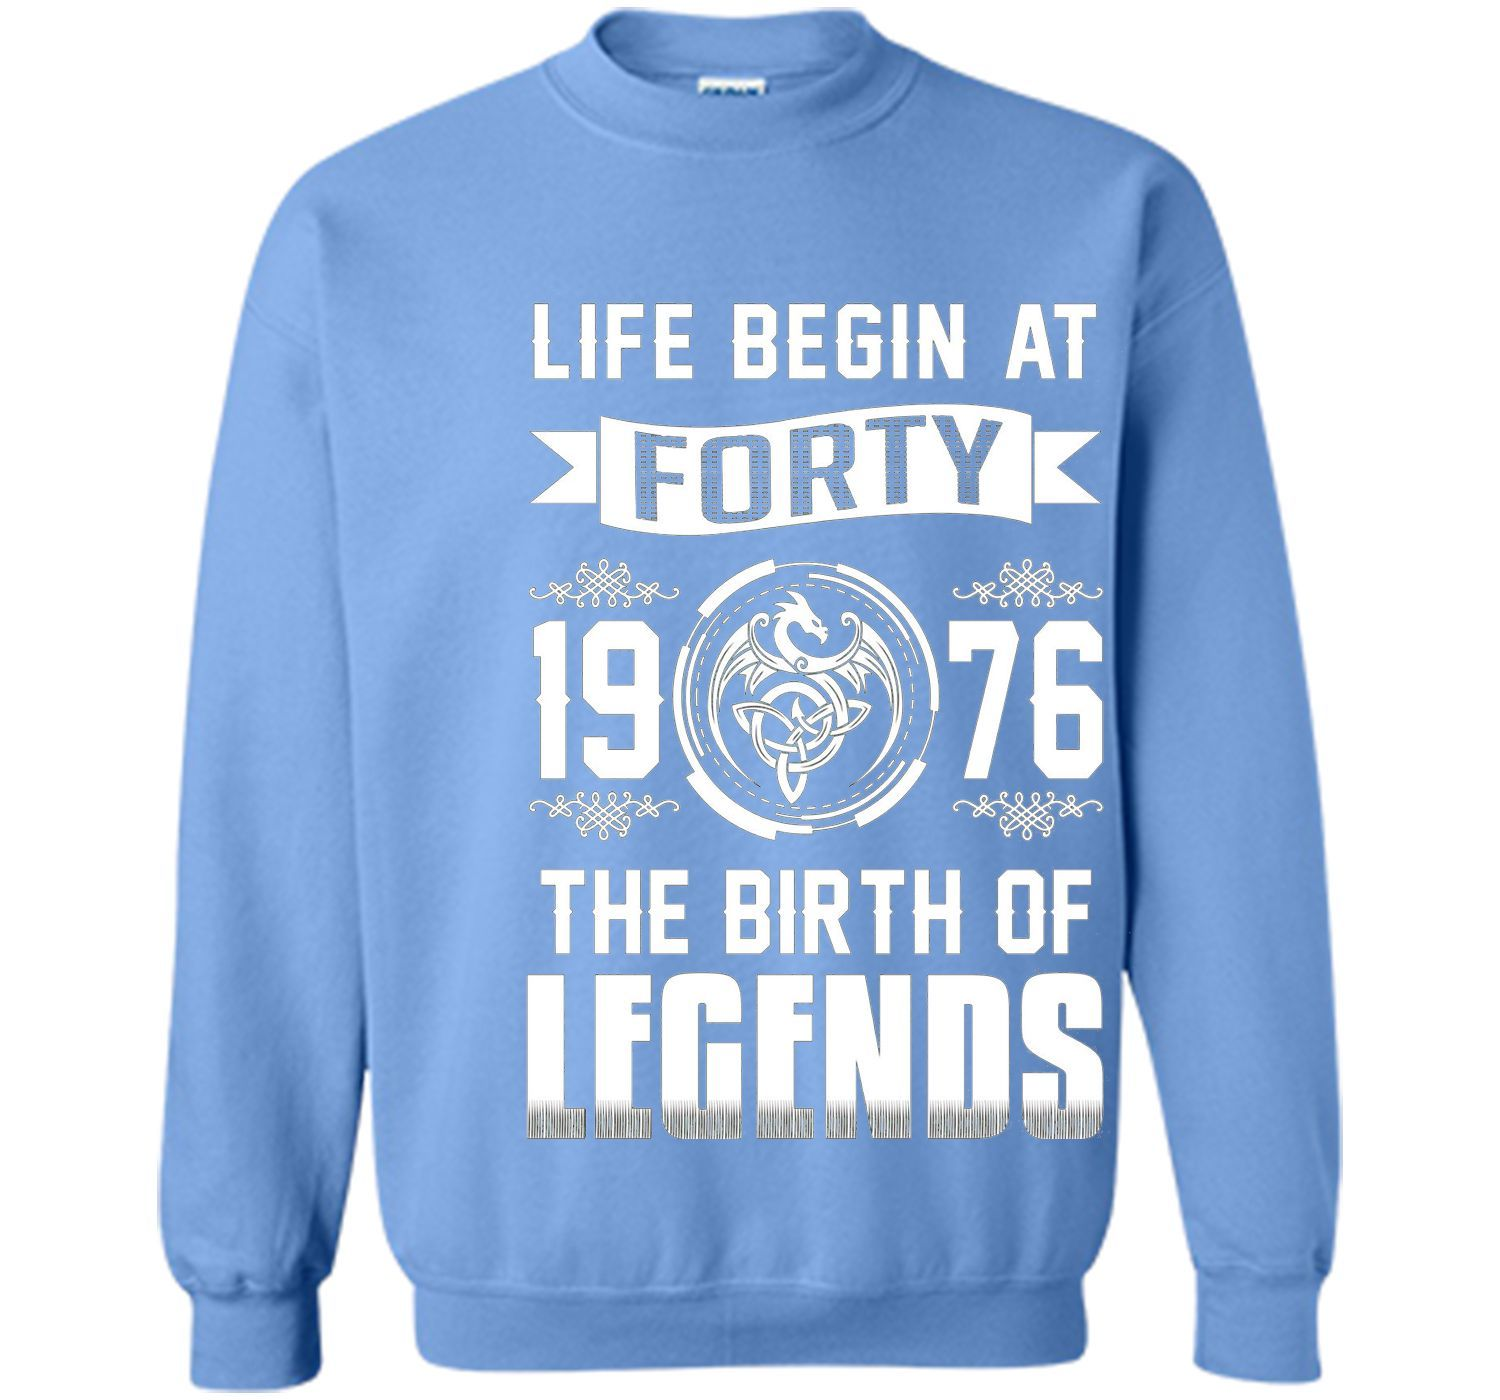 1976 T-shirt , Life begins at Forty . The birth of legends